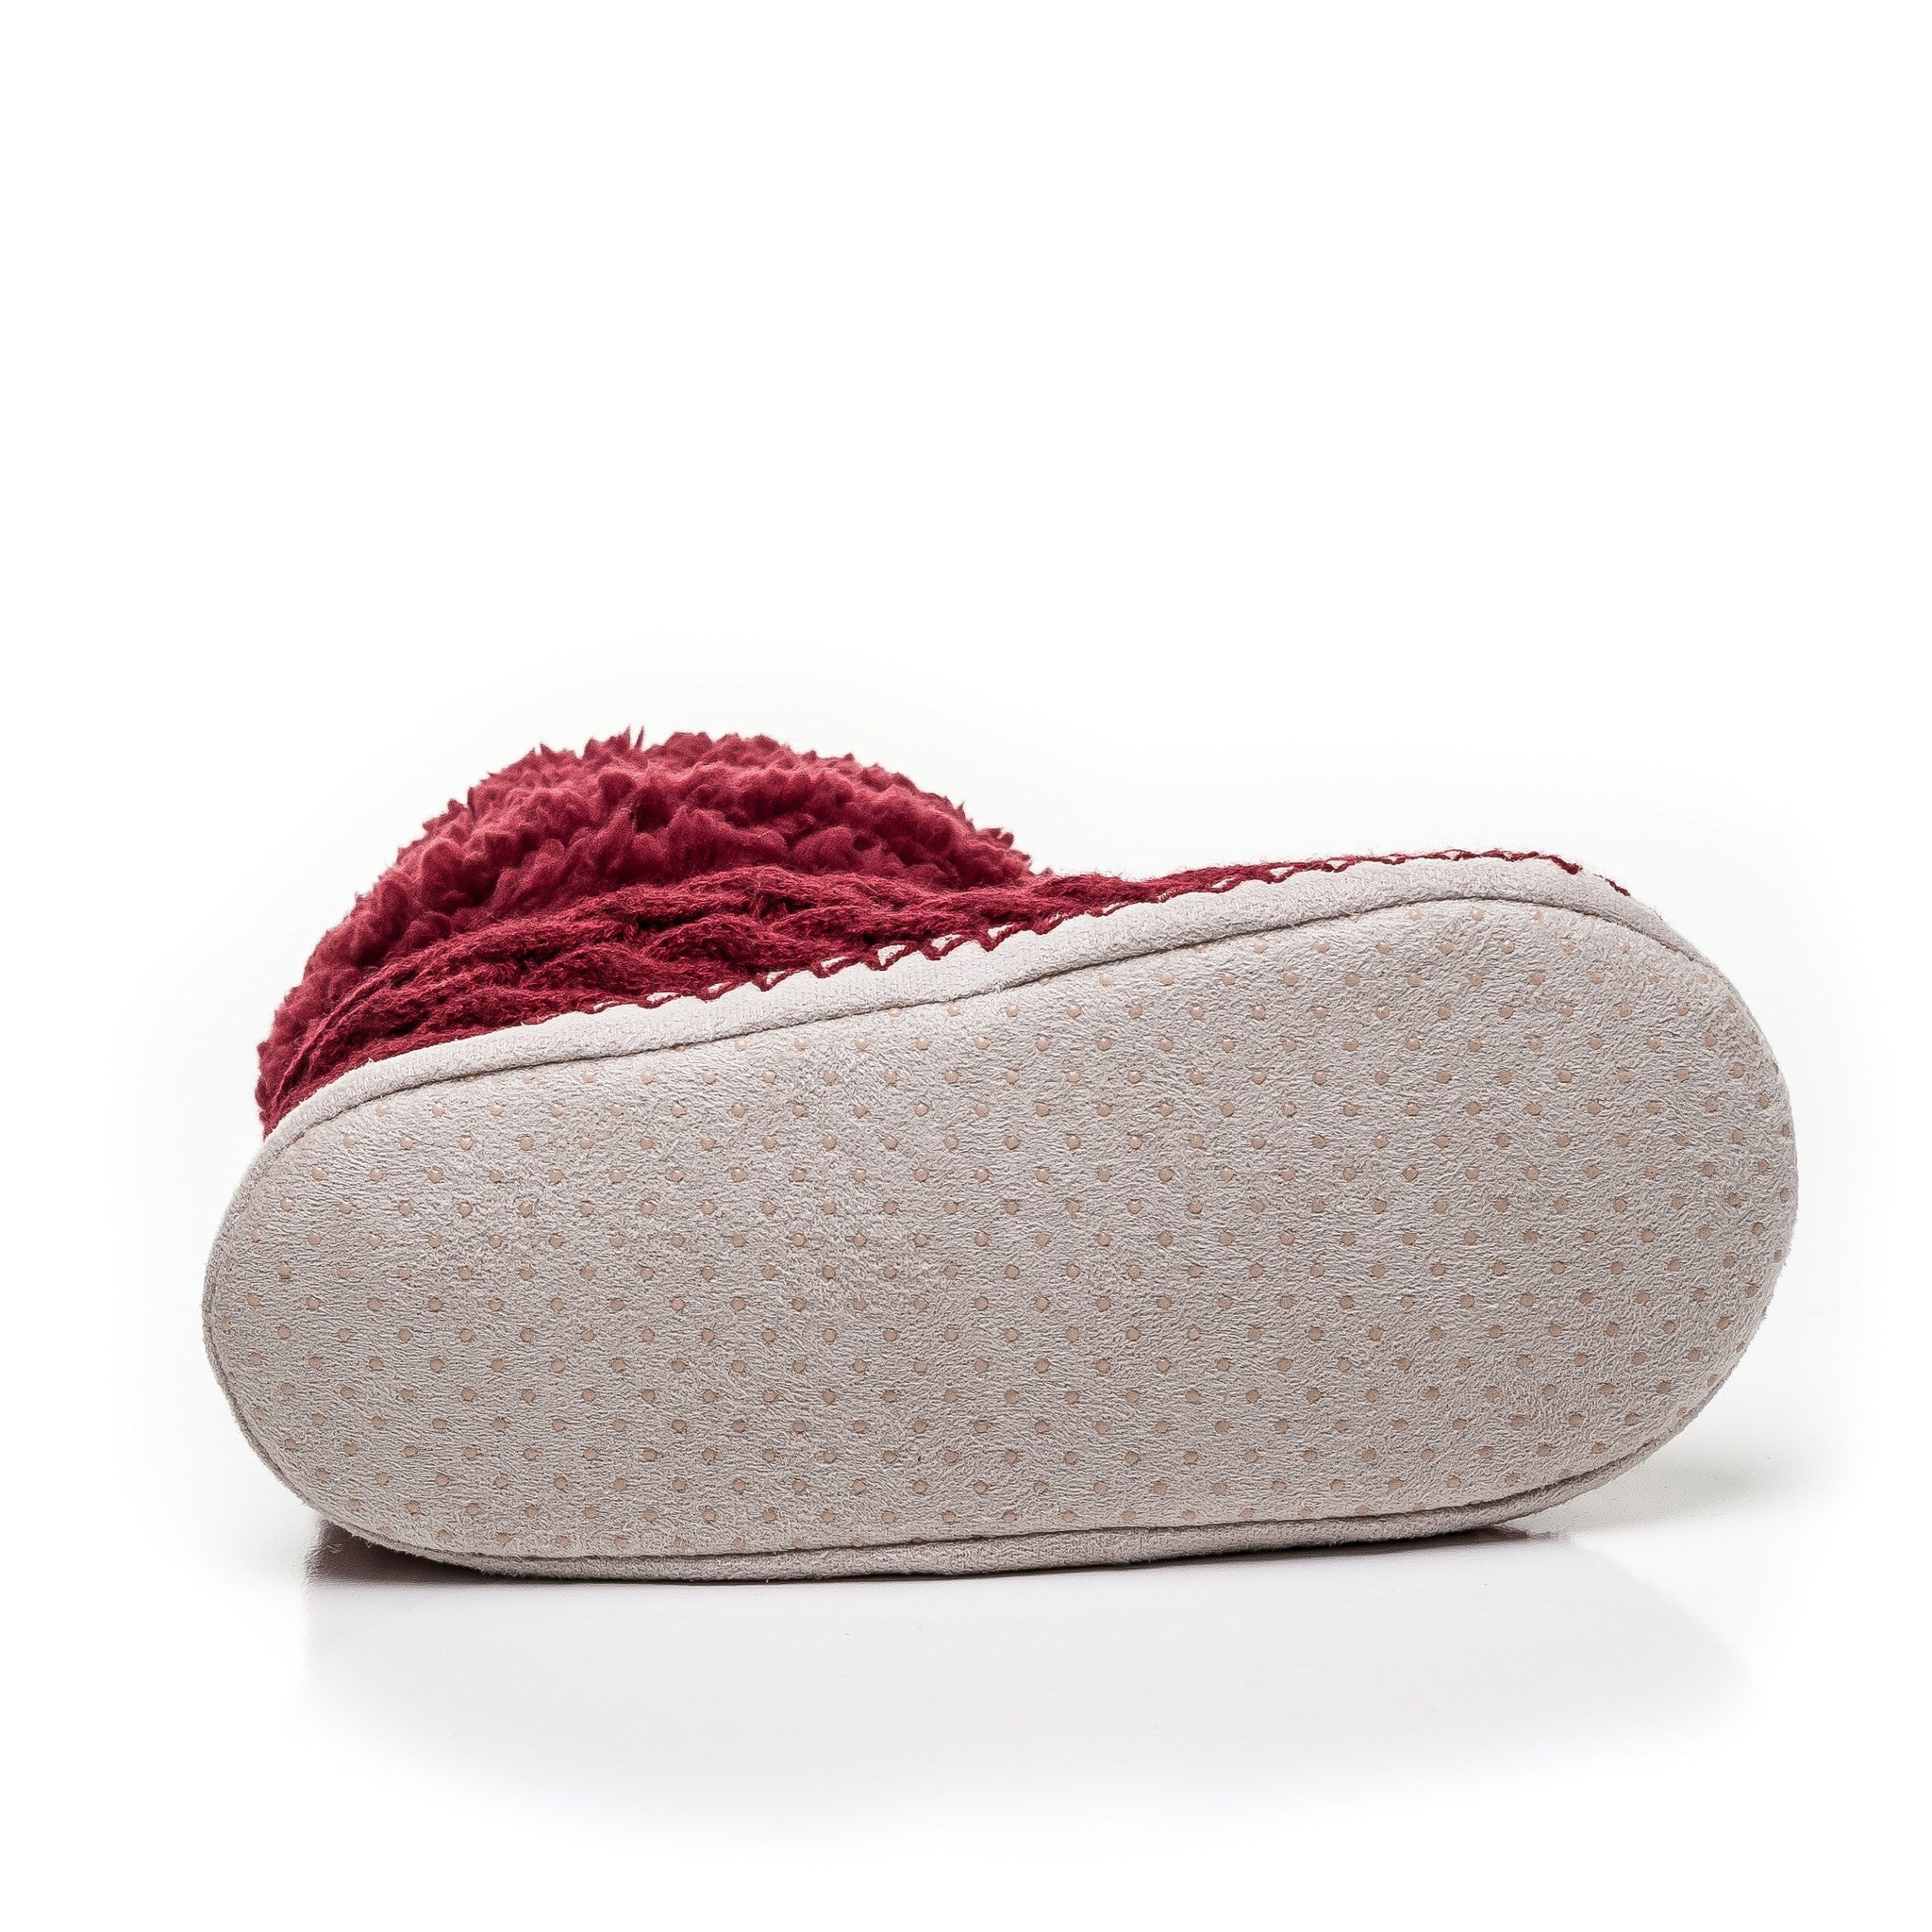 57ee051cad1 Women s Fuzzy Delight Cable Knit Indoor Short Boot Slippers Red Red